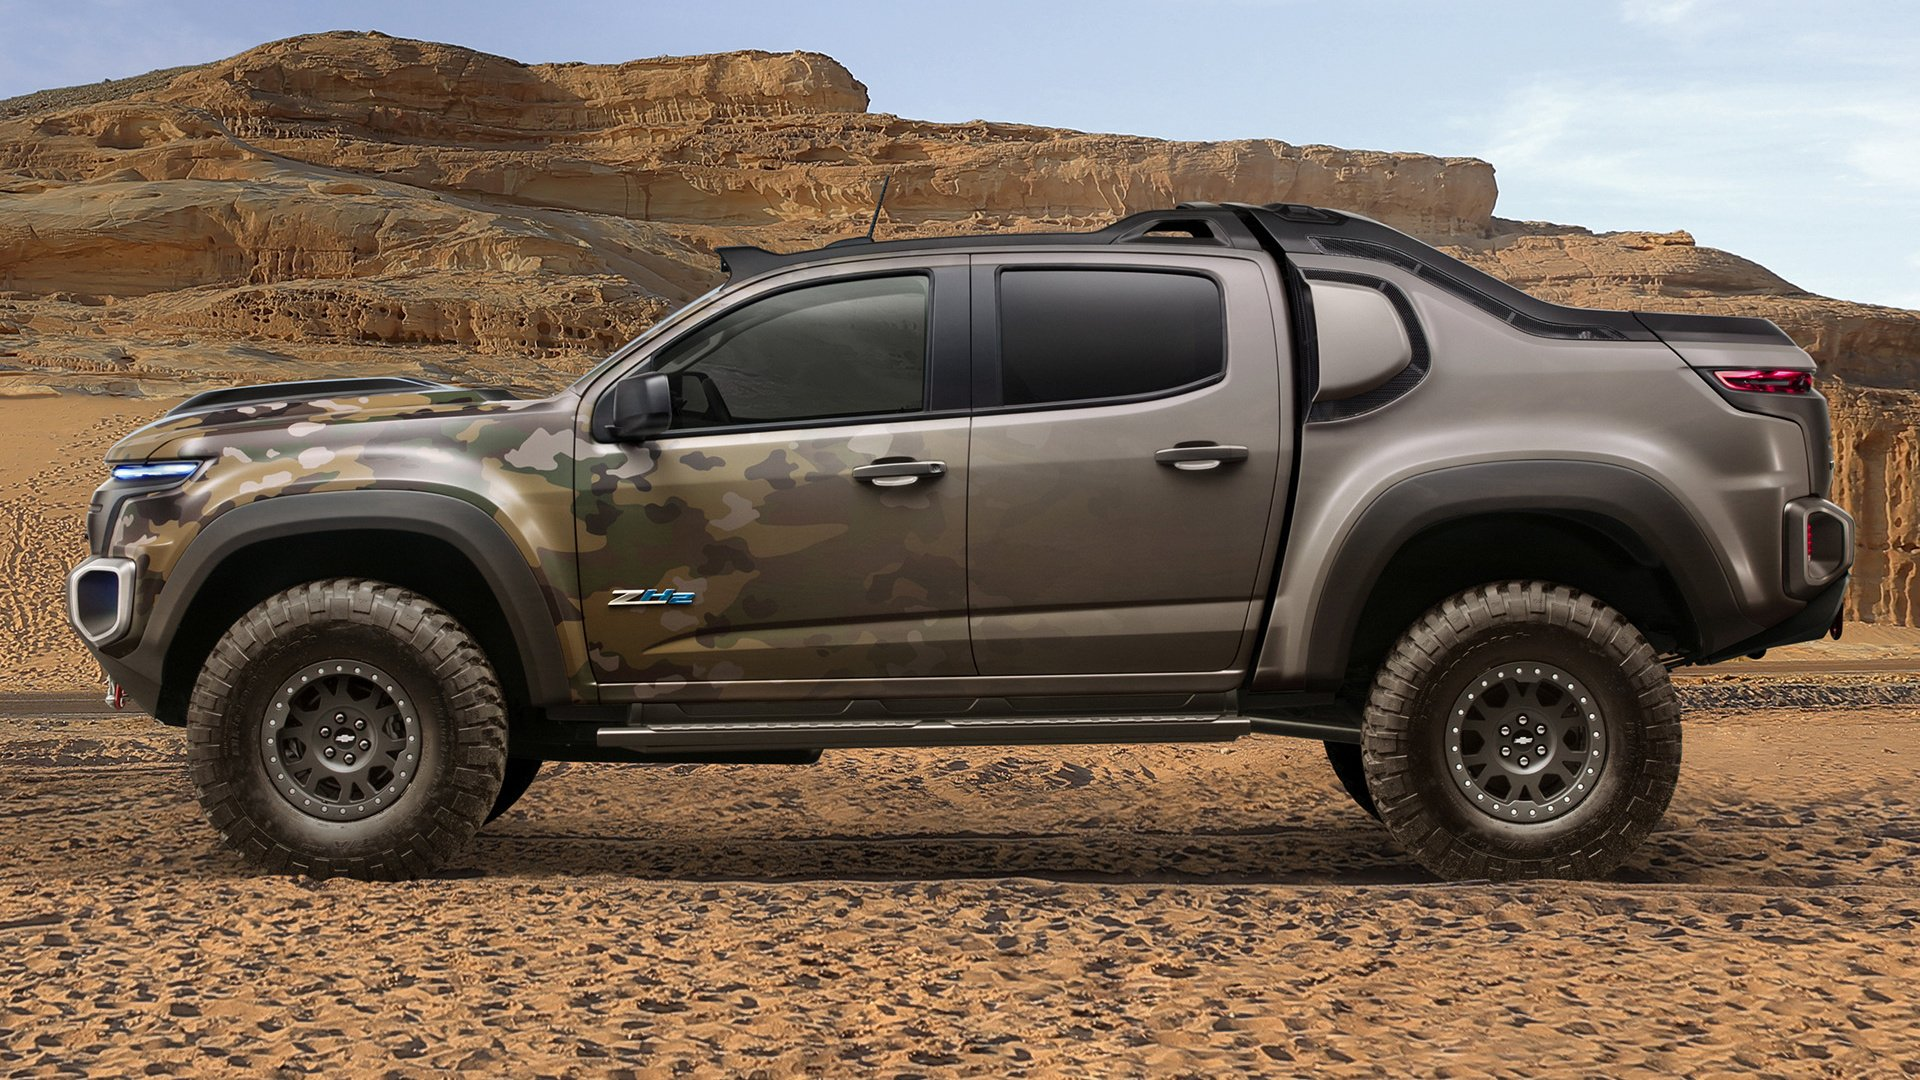 Vehicles - Chevrolet Colorado  Chevrolet Colorado ZH2 Pickup Off-Road Car Wallpaper